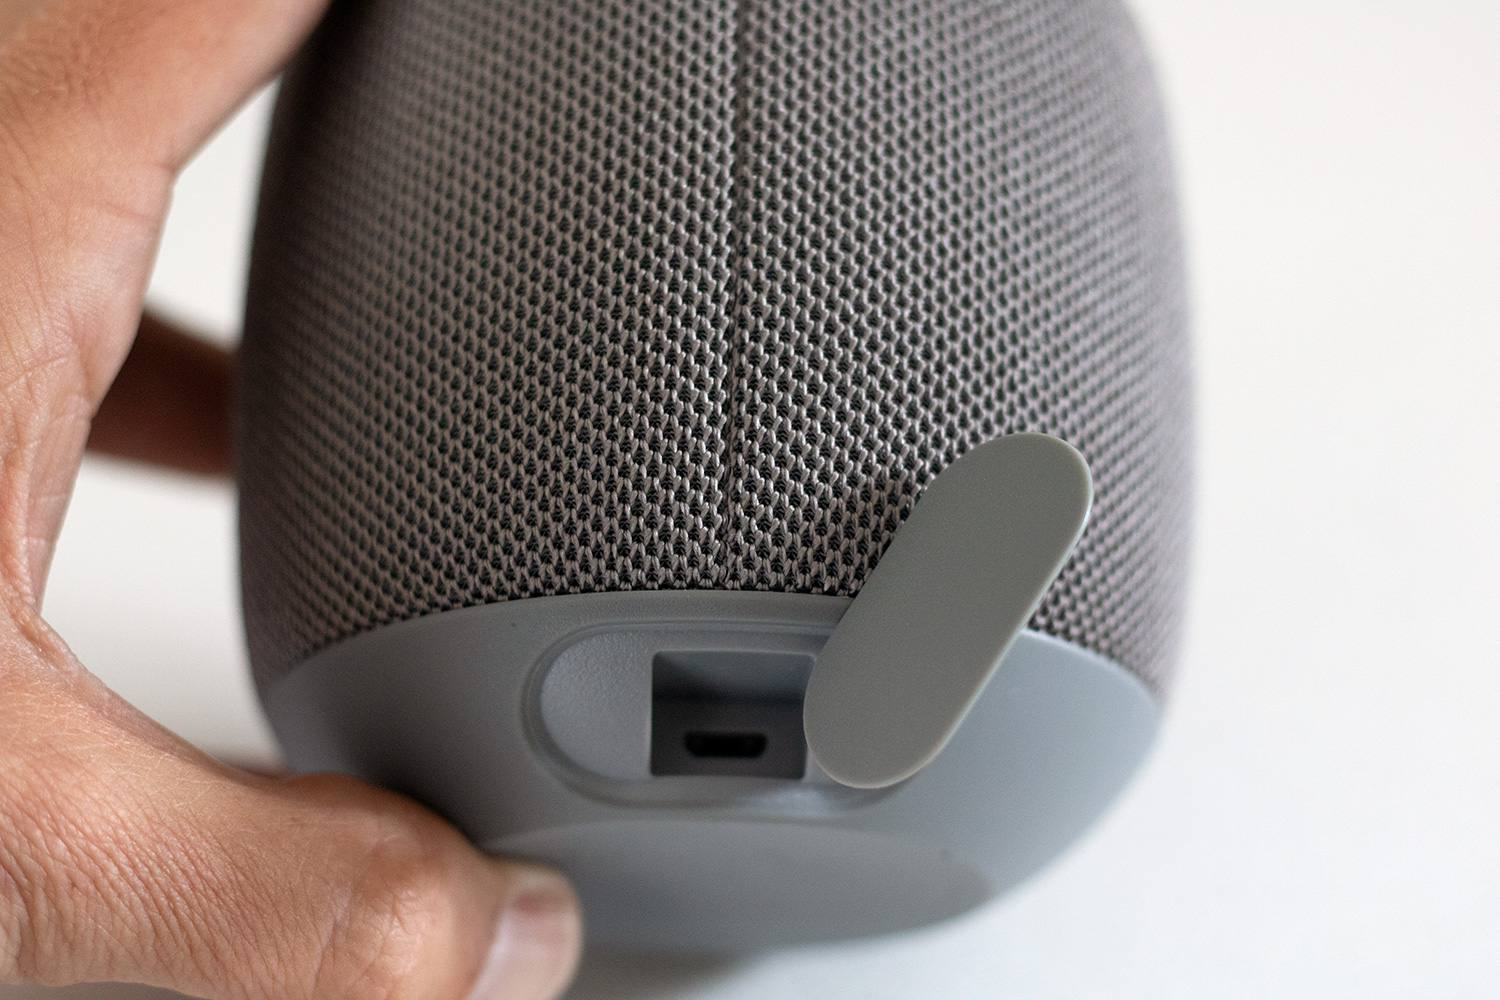 The 11 Best Shower Speakers of 2019